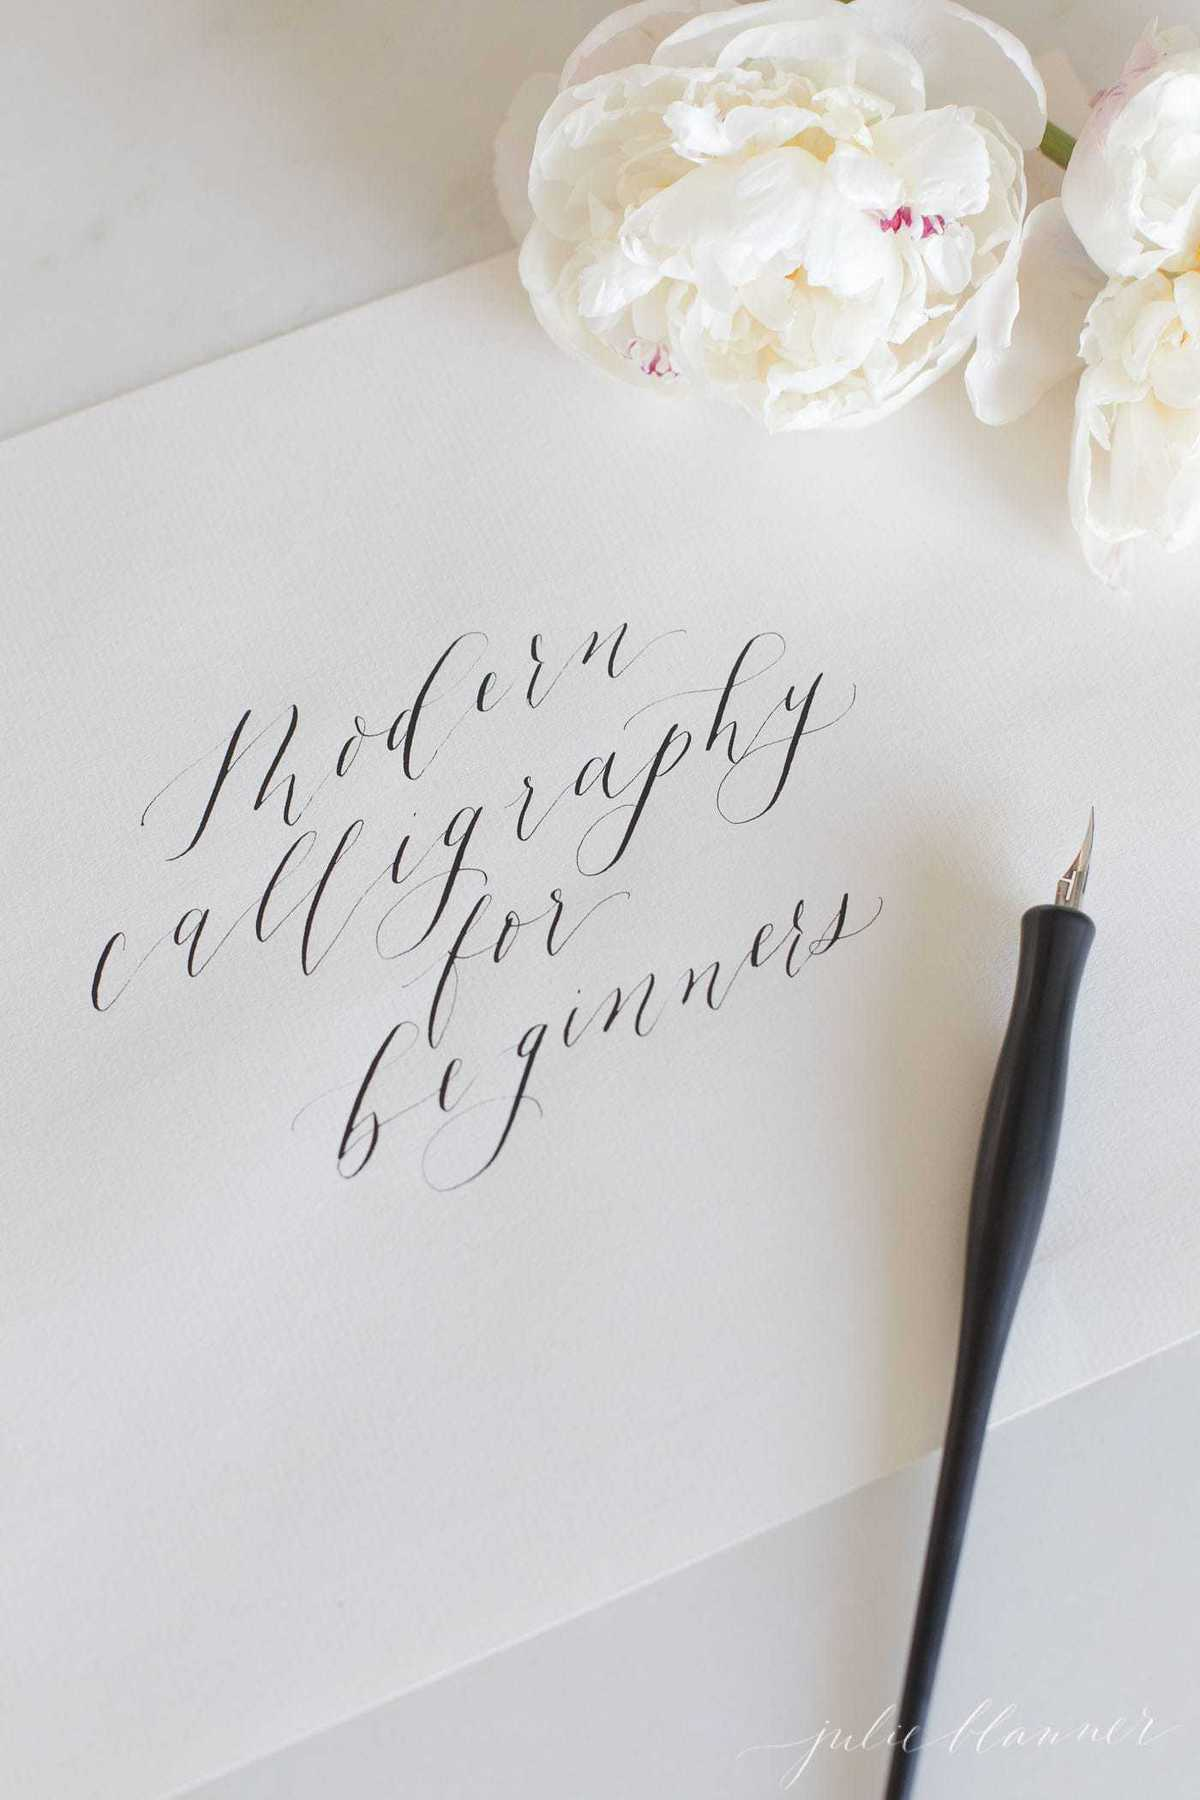 How to use a calligraphy pen